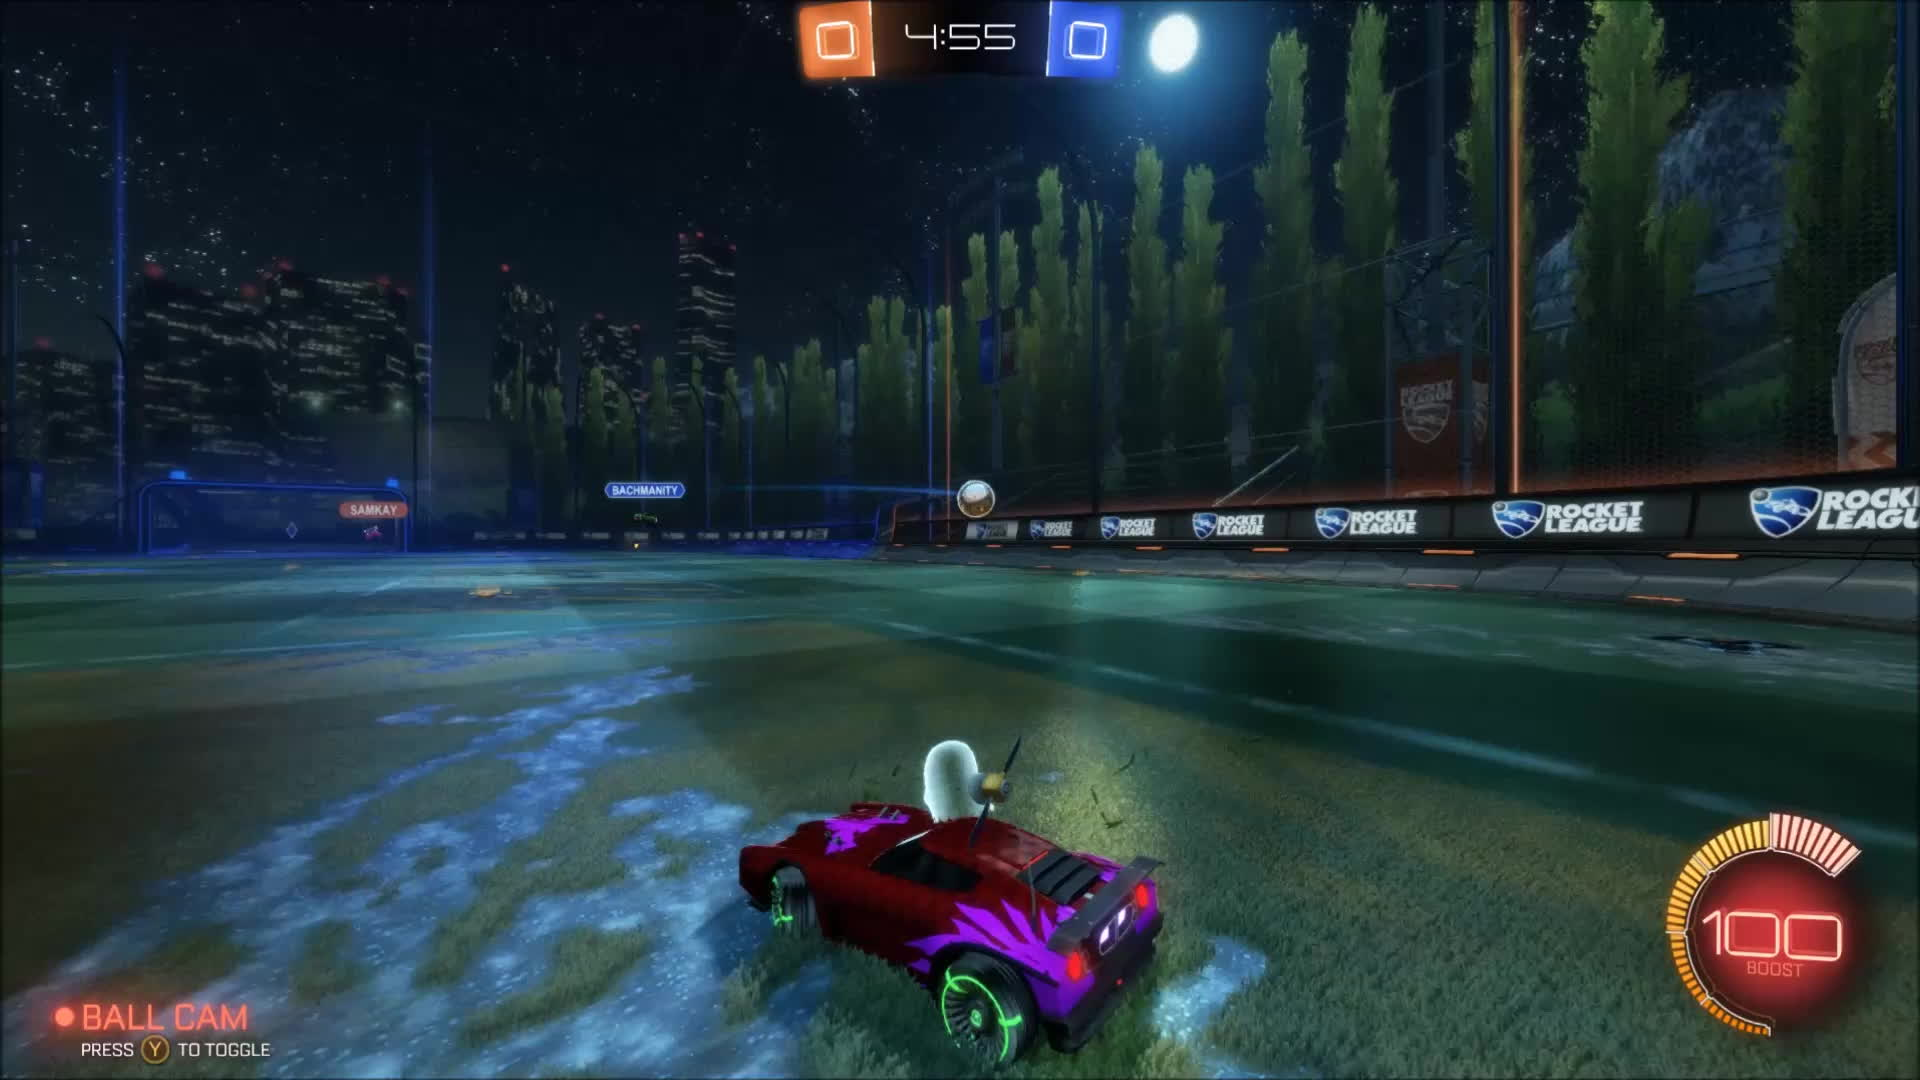 Rocket League Style Gifs Search | Search & Share on Homdor